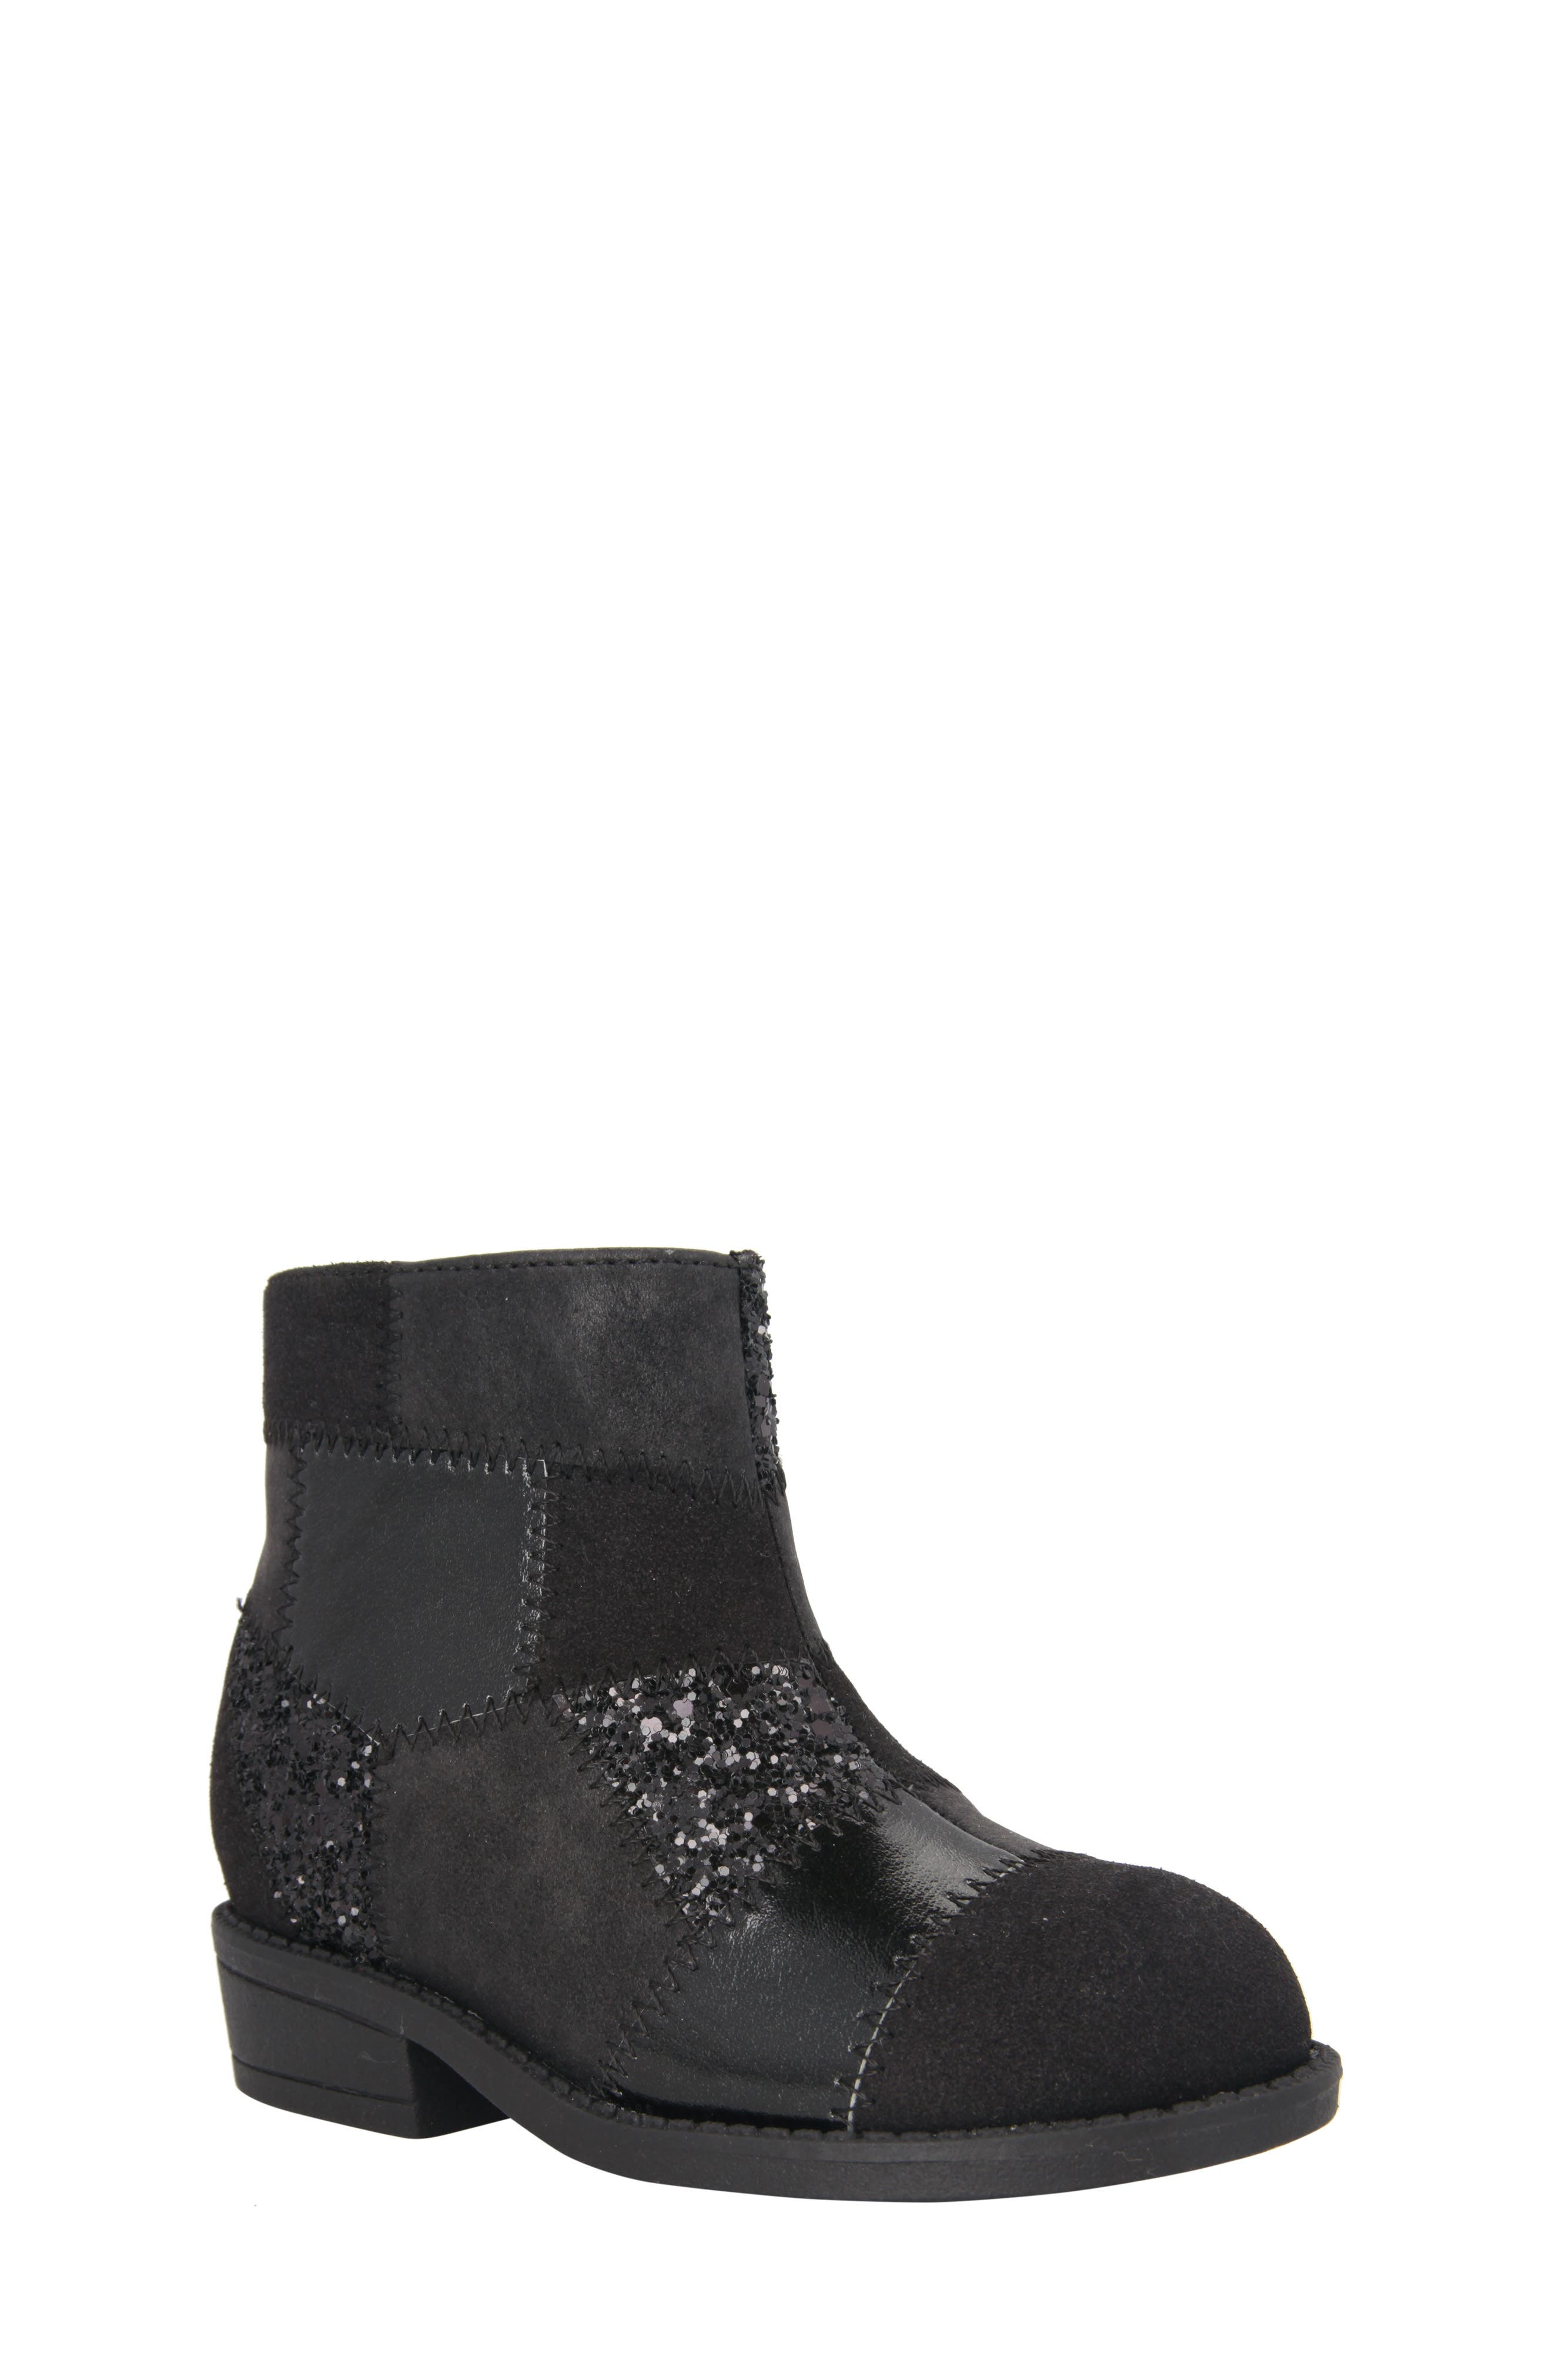 Ines Glittery Patchwork Bootie,                         Main,                         color, Black Metallic/ Black Glitter